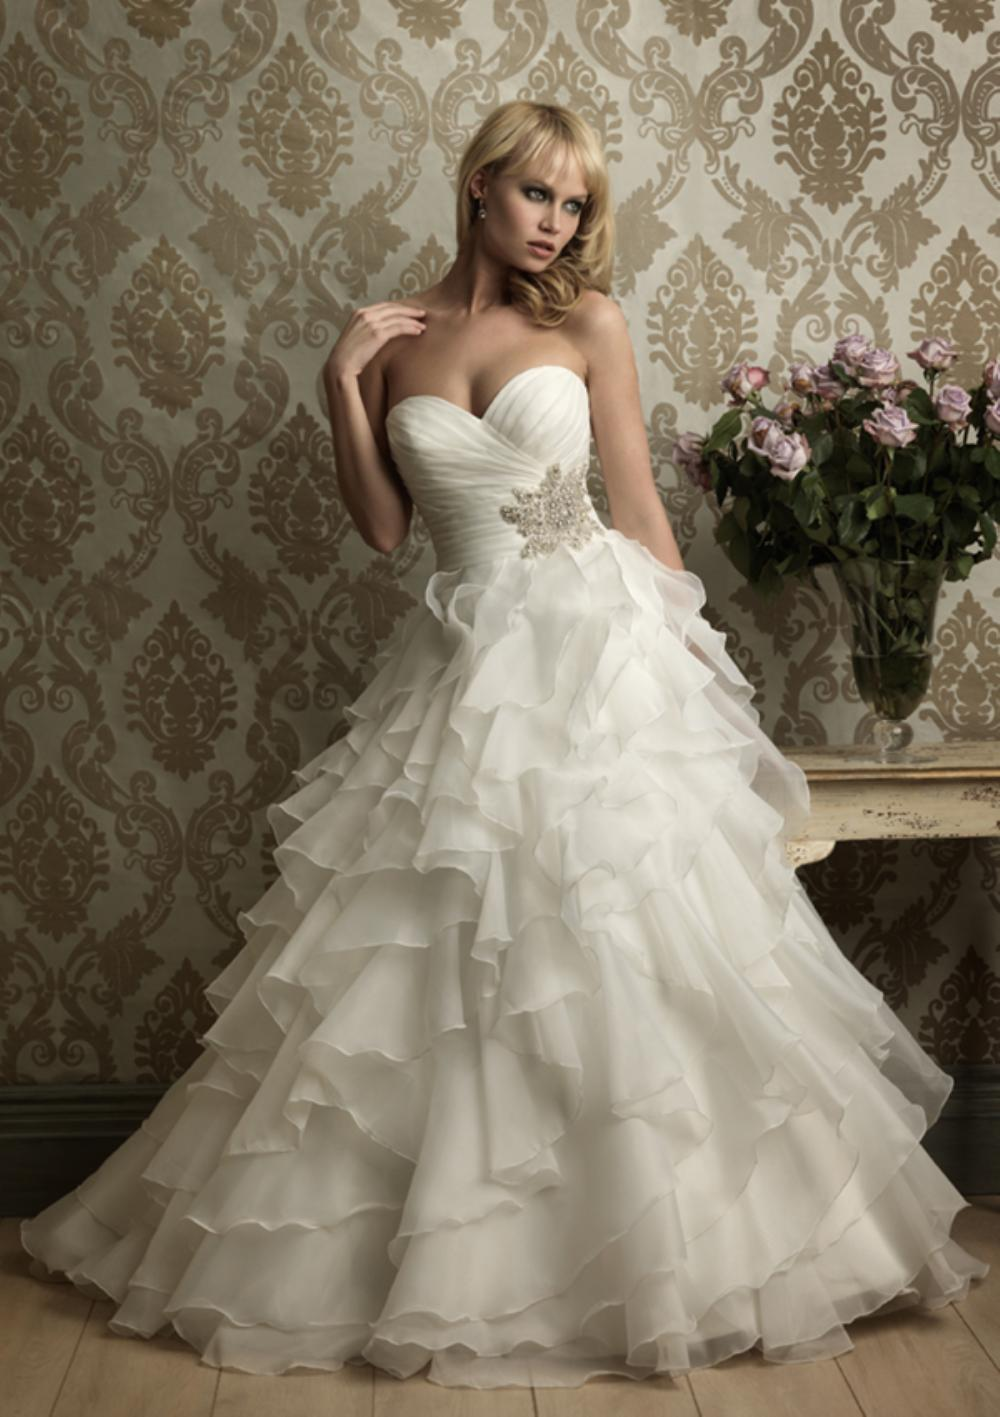 BEAUTIFUL ALLURE WEDDING DRESS - Style 8862, Size 10- $1,000 OBO